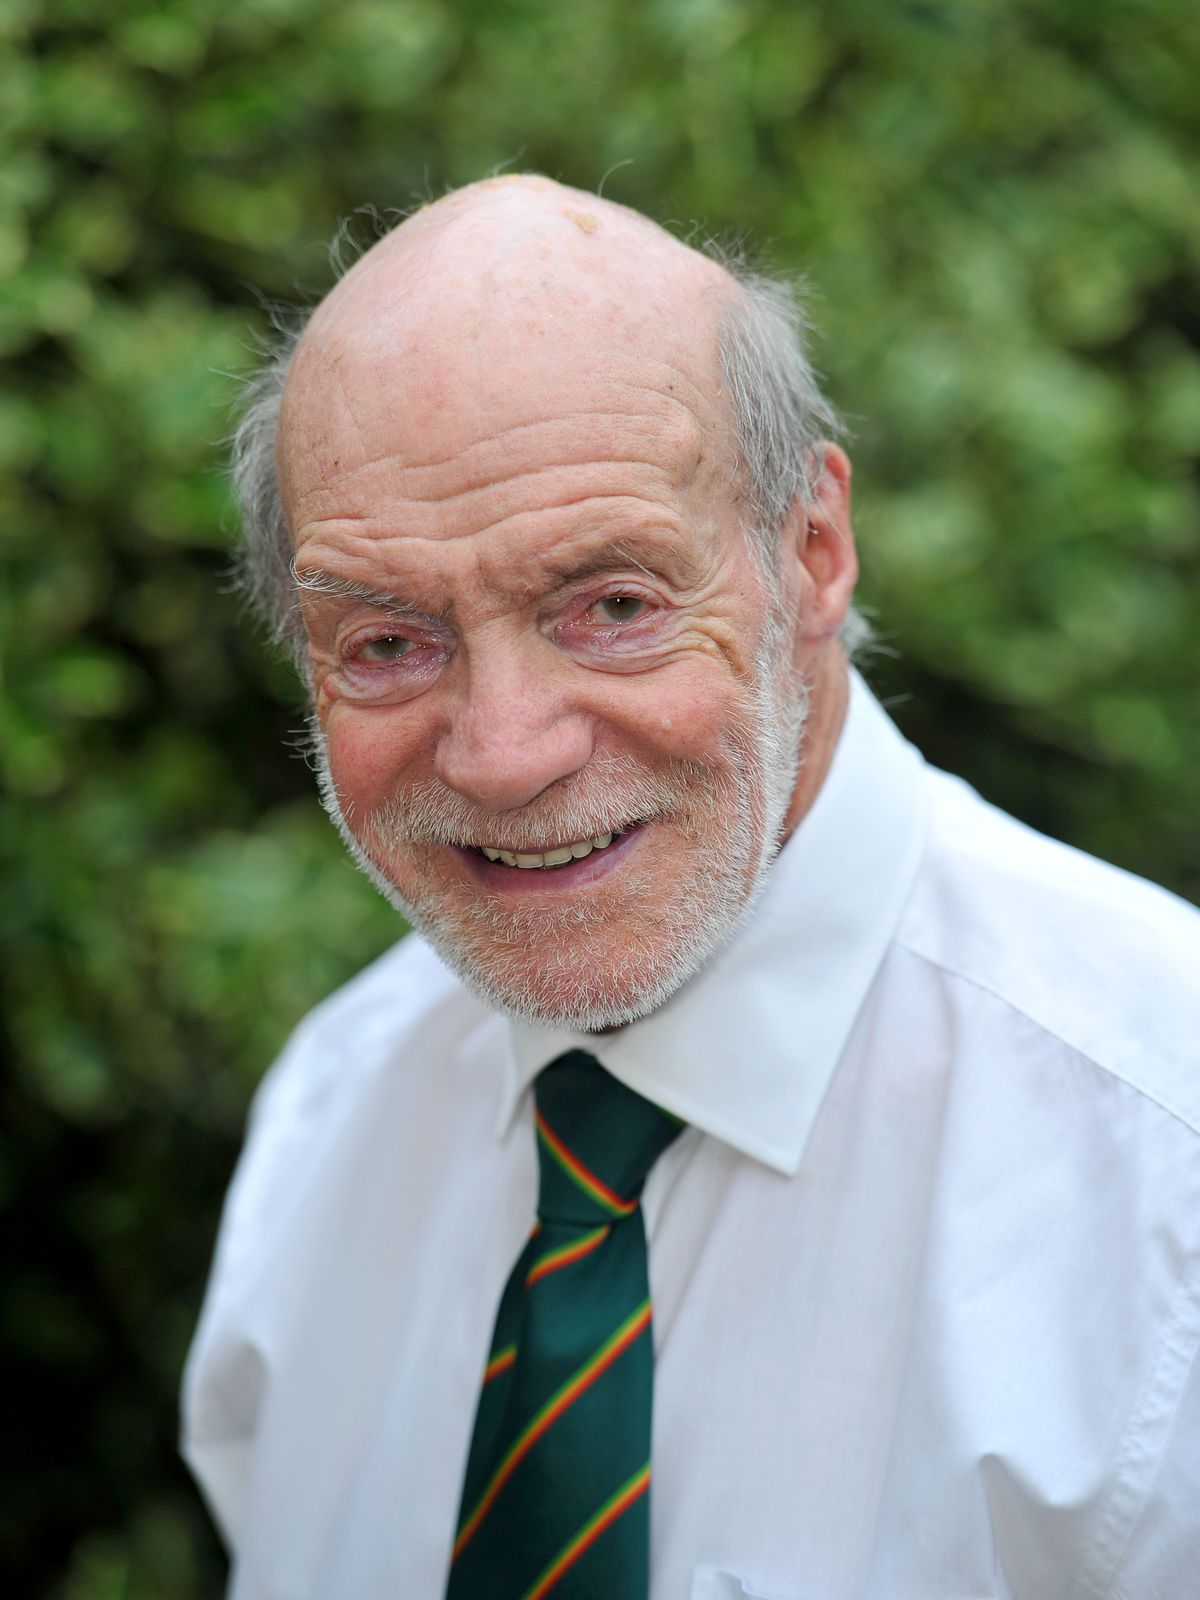 Barry Bond has been awarded an MBE for services to education